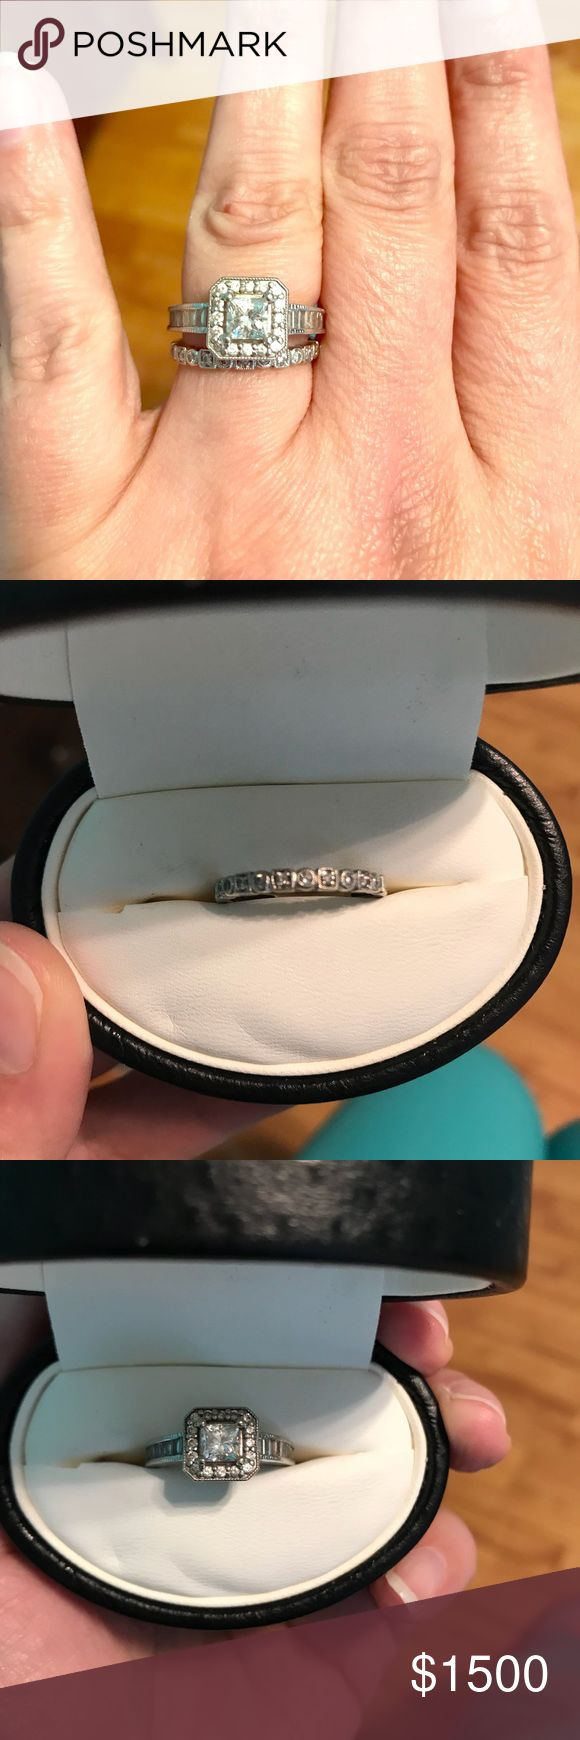 1 Carat Diamond Engagement Ring and Band, size 6 1 Carat Diamond Engagement Ring with halo of solitaire diamonds and diamond baguettes on each side. The wedding band is Tacori. Both are a size 6. Tacori Jewelry Rings